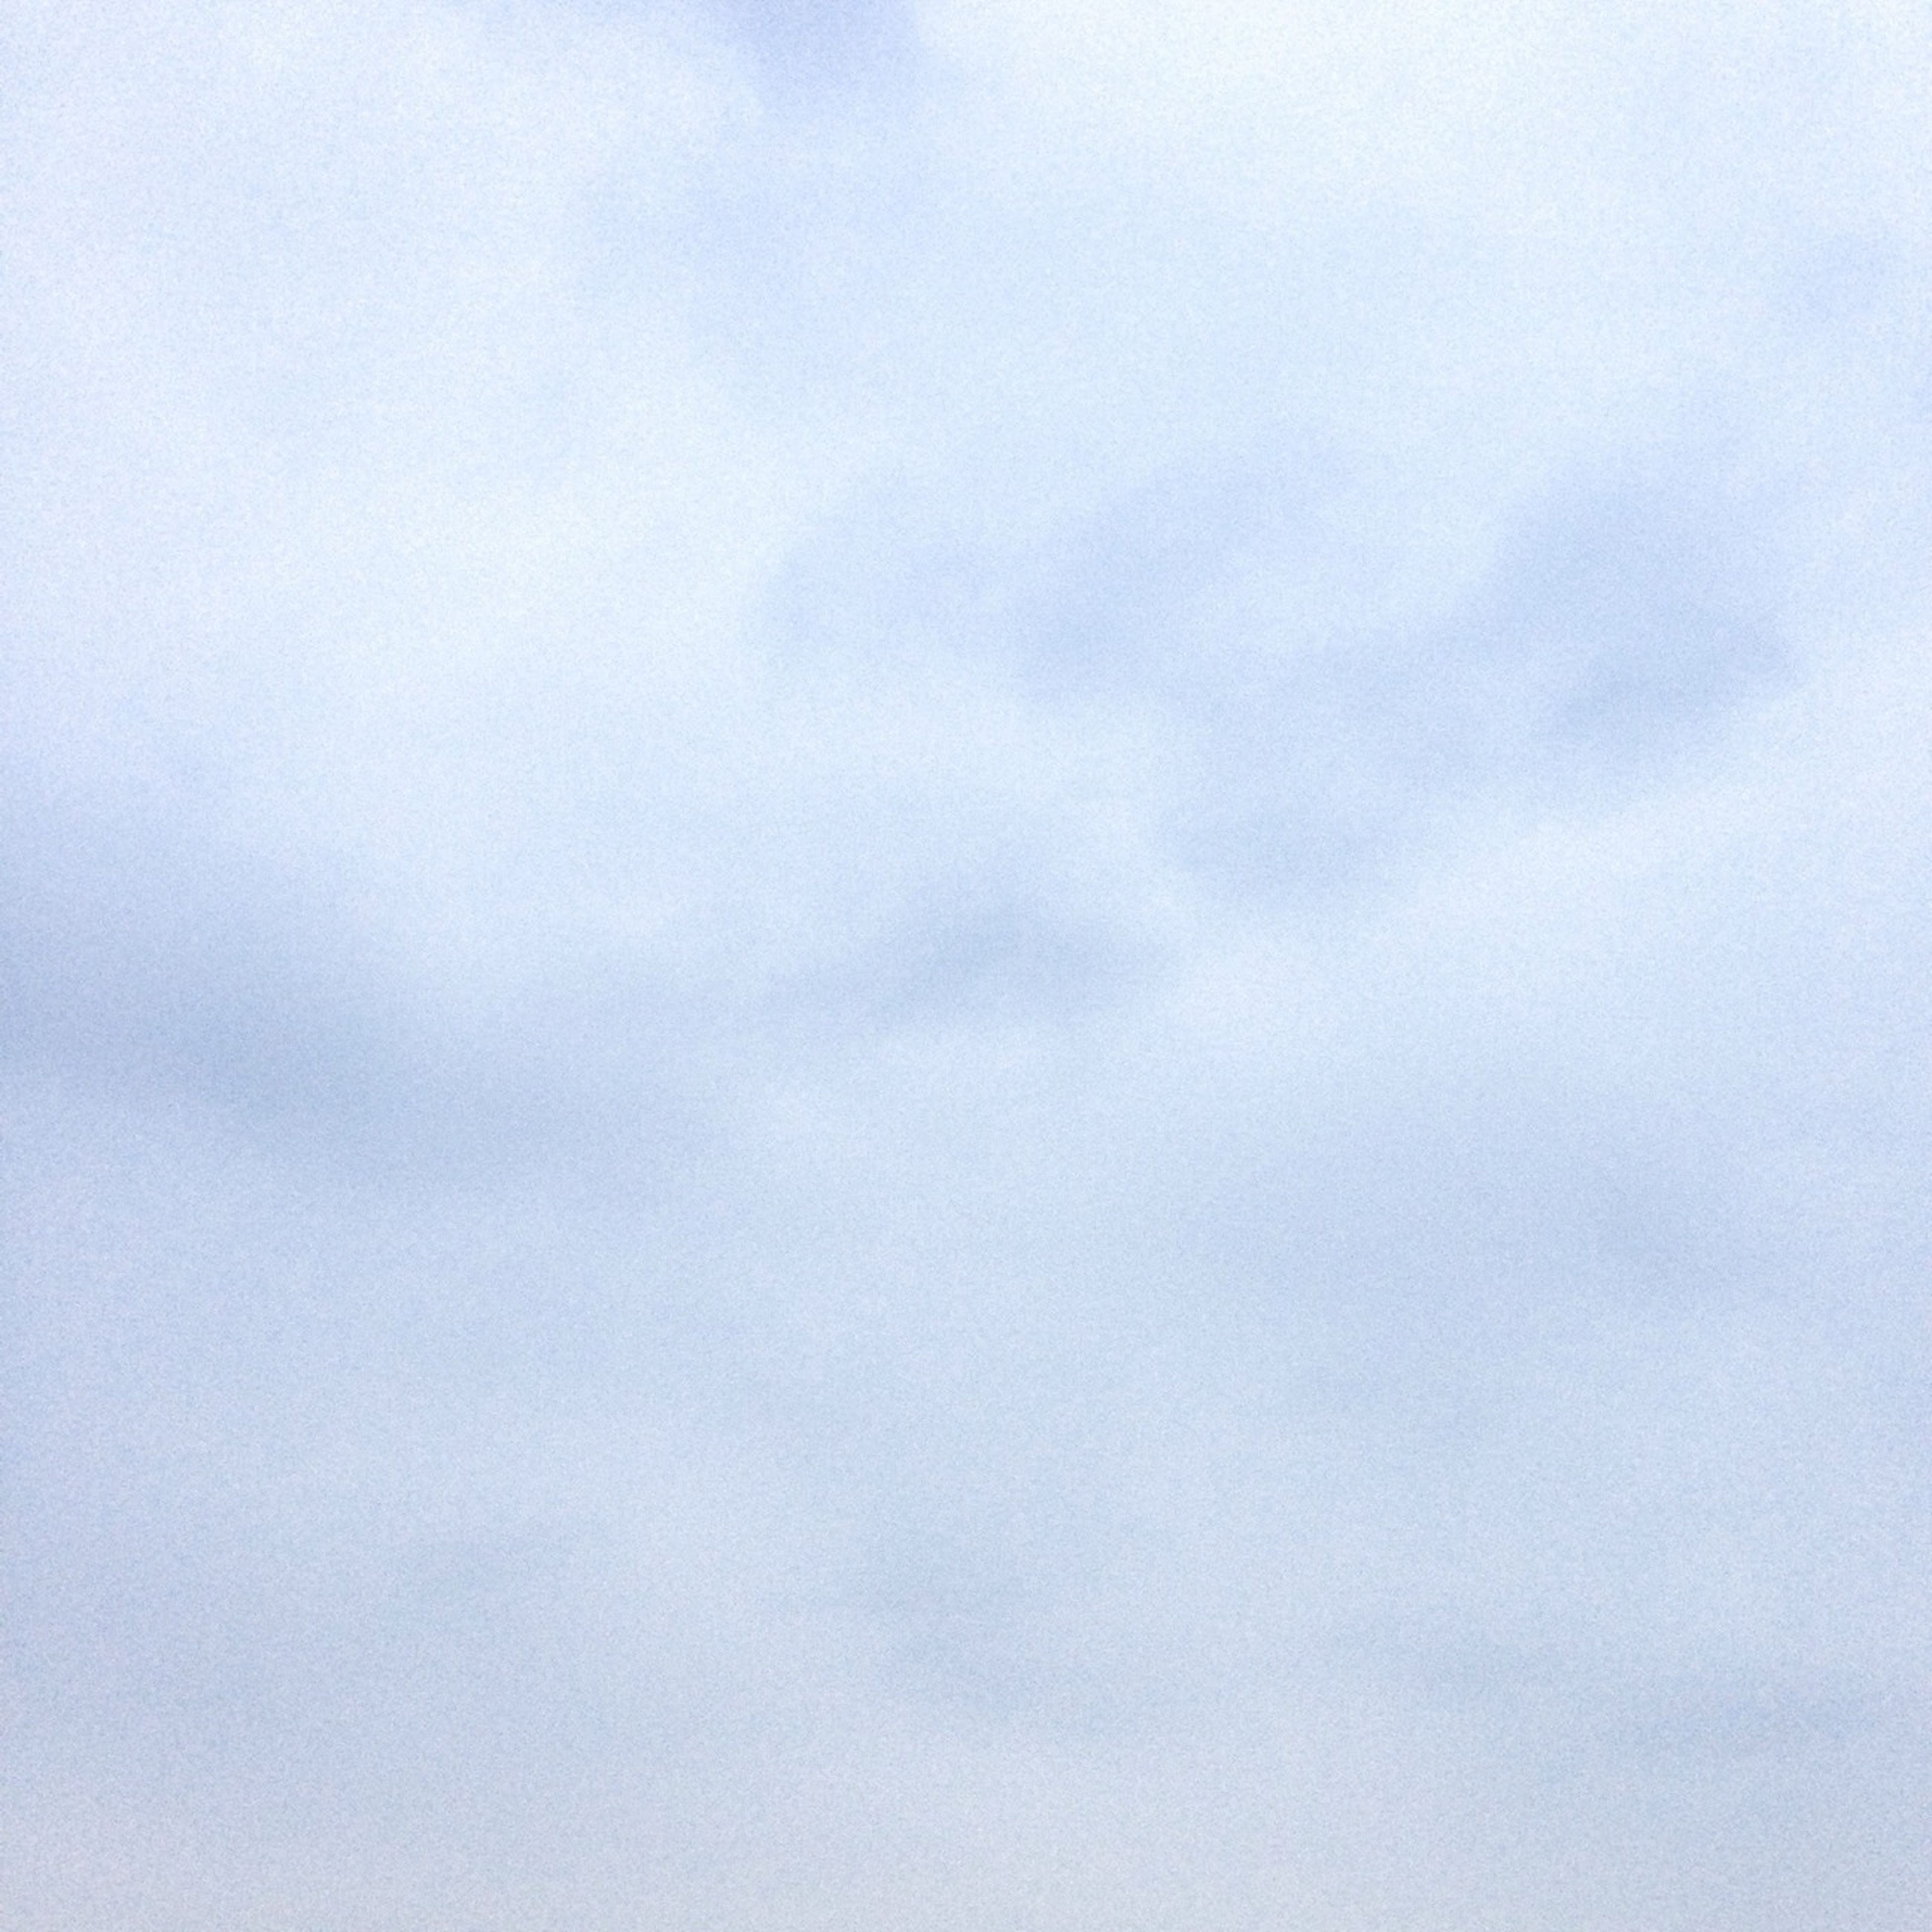 sky, low angle view, tranquility, beauty in nature, copy space, cloud - sky, scenics, nature, tranquil scene, weather, cloudy, overcast, backgrounds, sky only, outdoors, no people, day, idyllic, cloud, white color